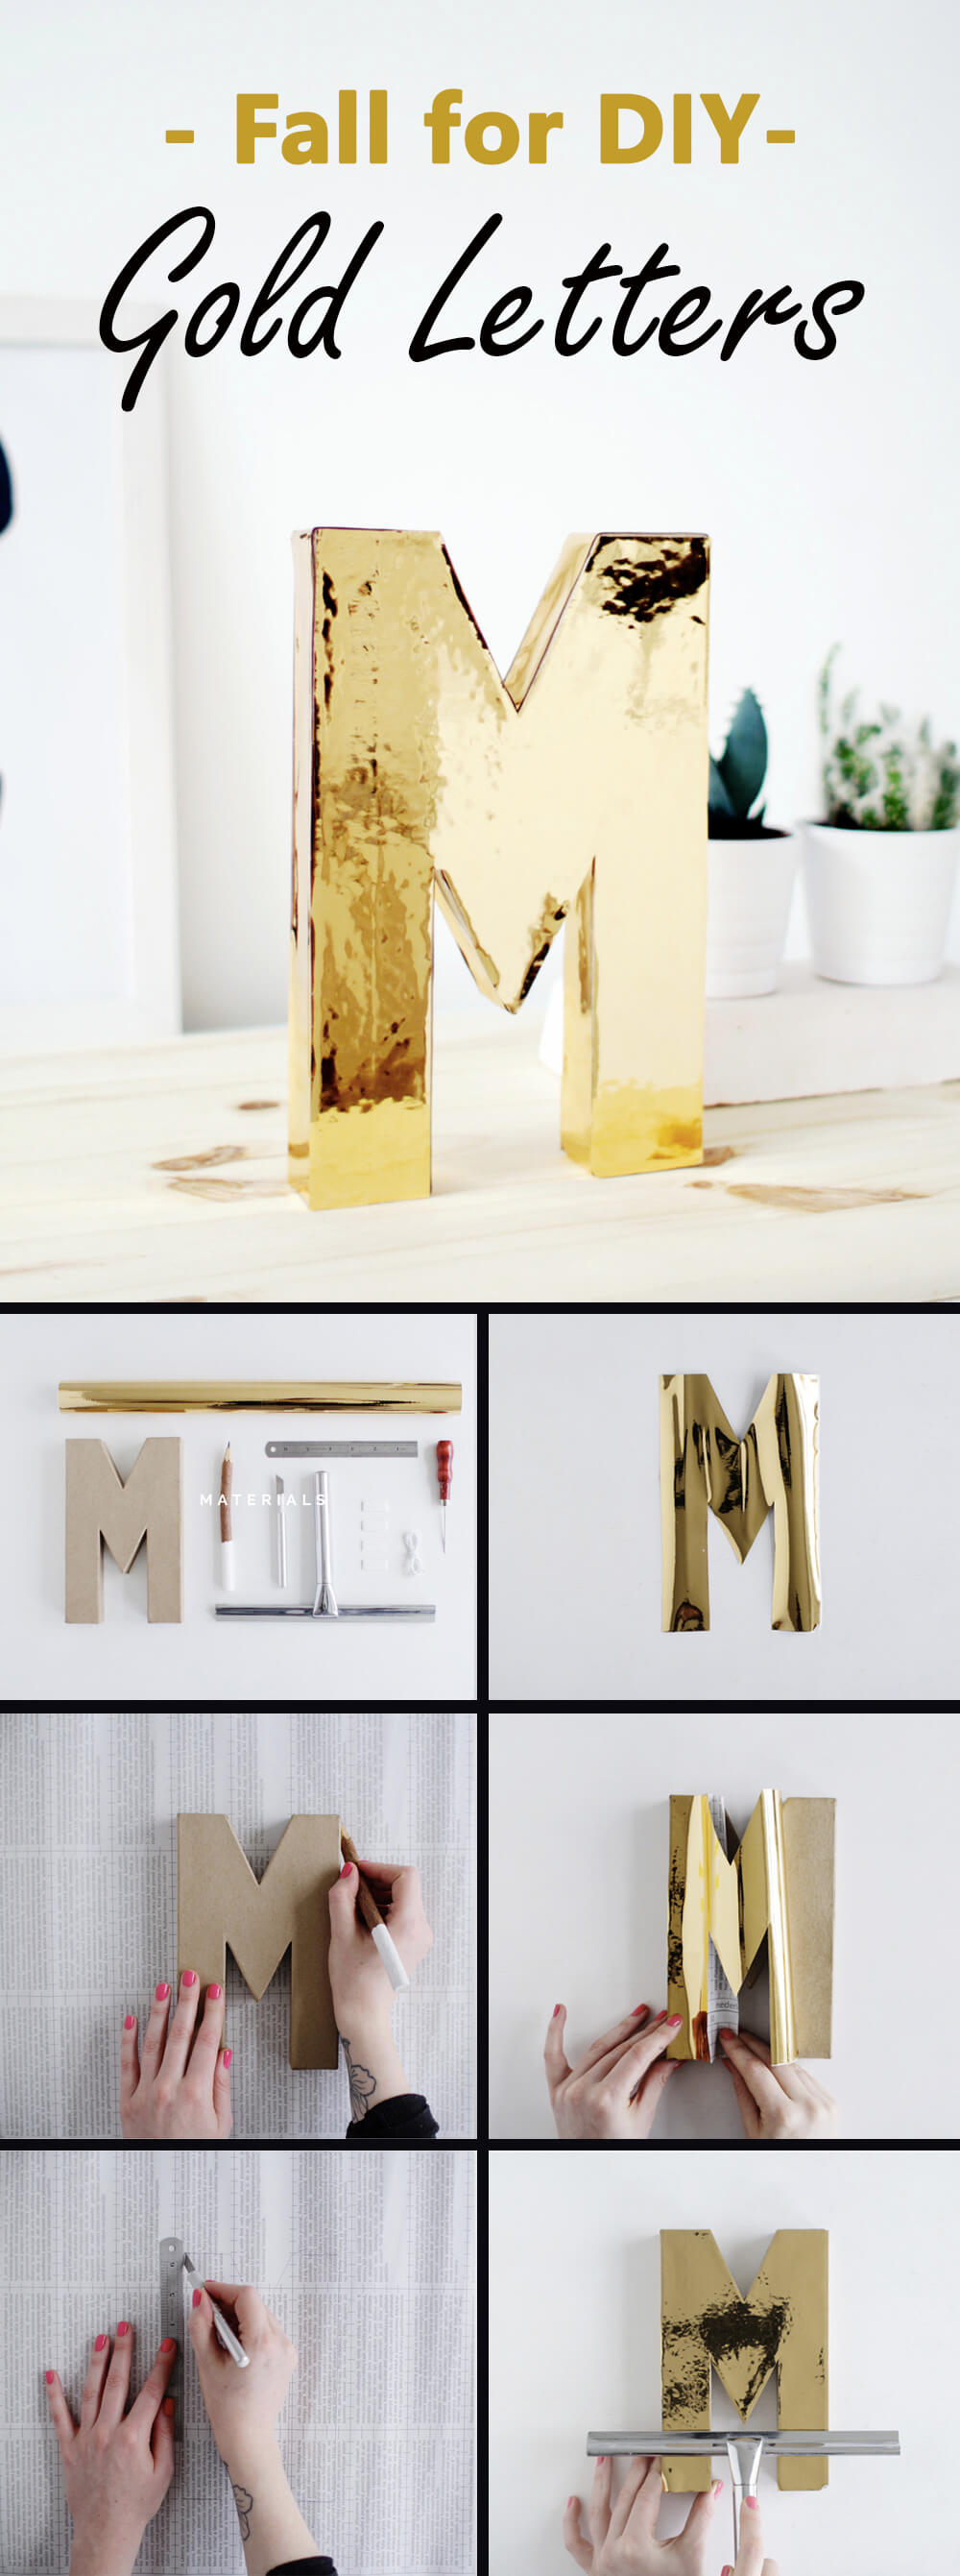 DIY Golden Letters Look Like Liquid Metal